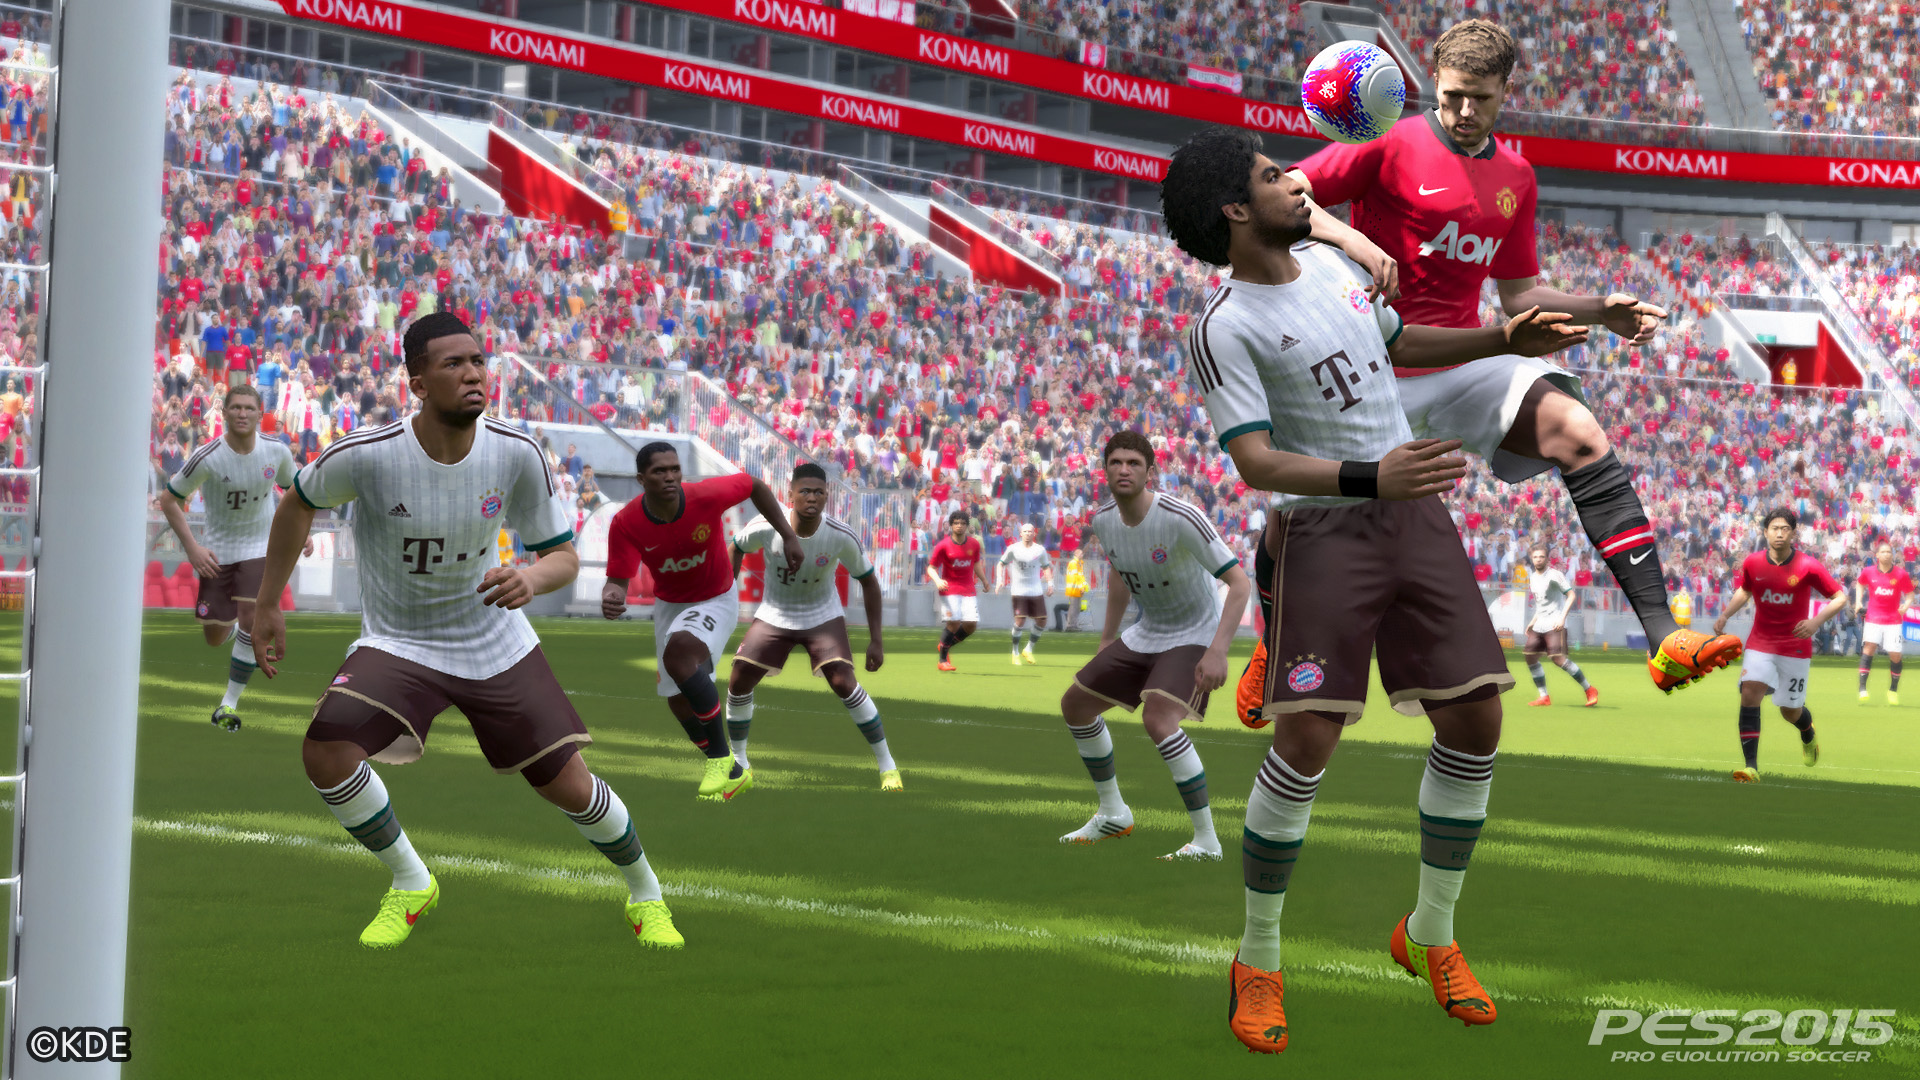 2585710-pes2015_konamistadium_shot_1_1404378154